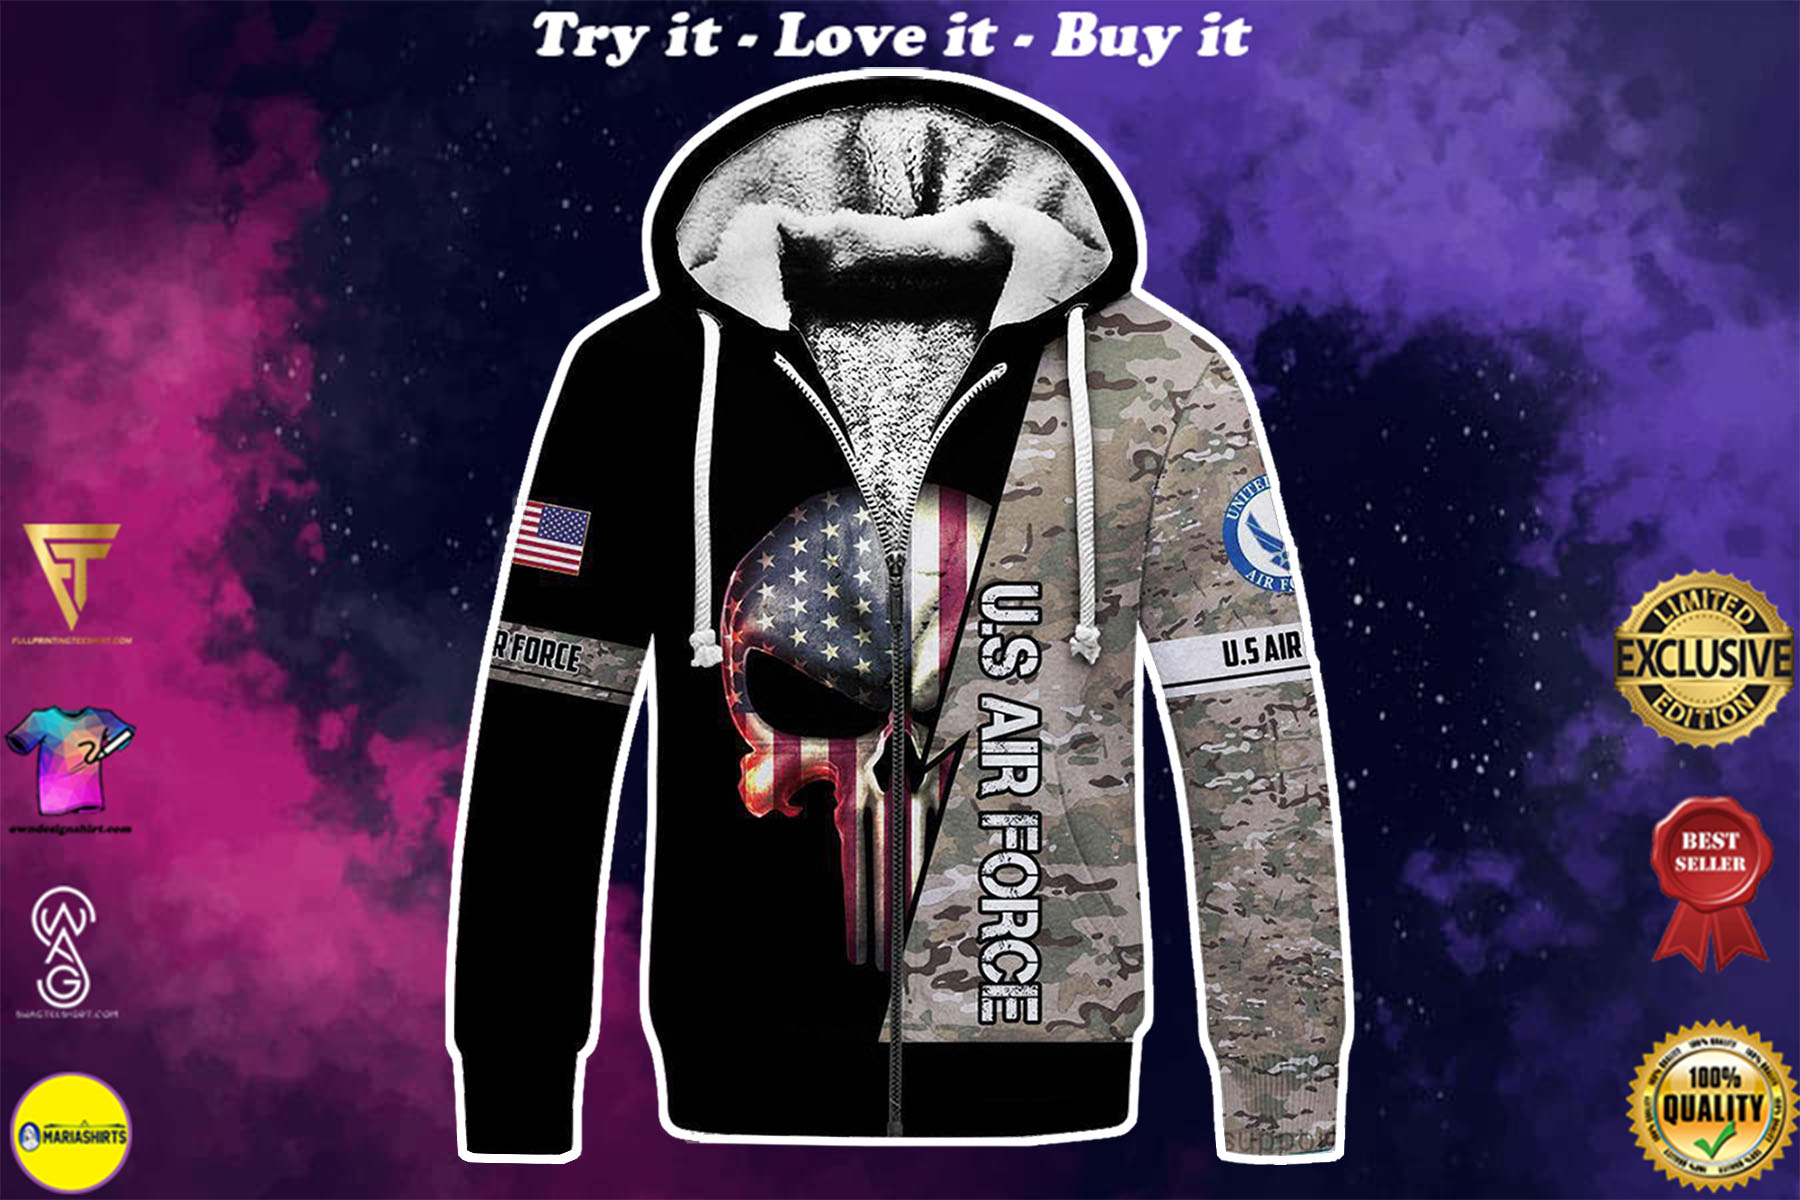 [highest selling] skull the united states air force camo full over printed shirt - maria